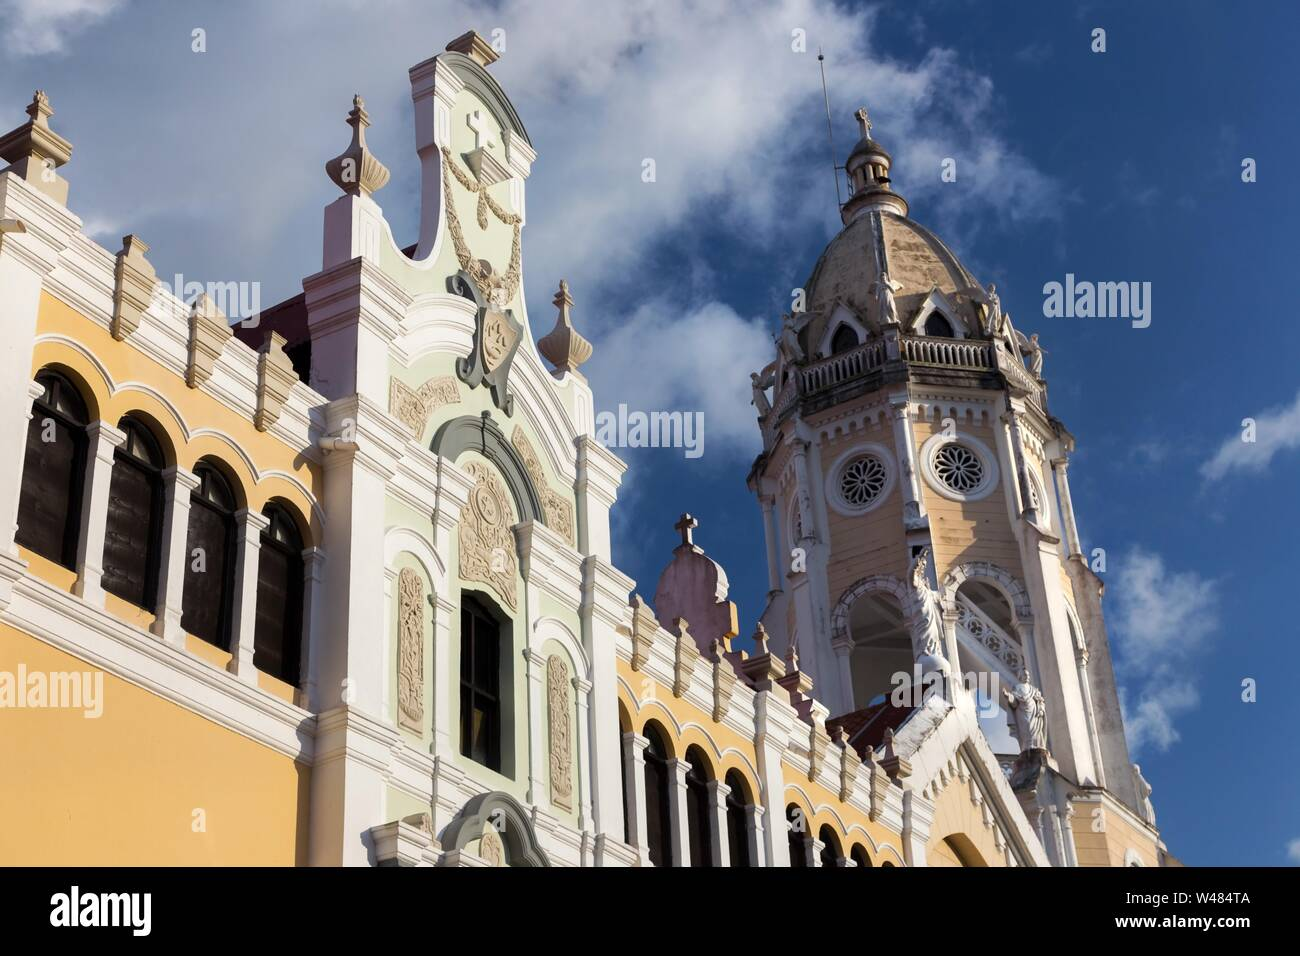 San Francisco De Asis Cathedral, a Roman Catholic Church built by Franciscans in Casco Viejo old Town, Panama City Stock Photo